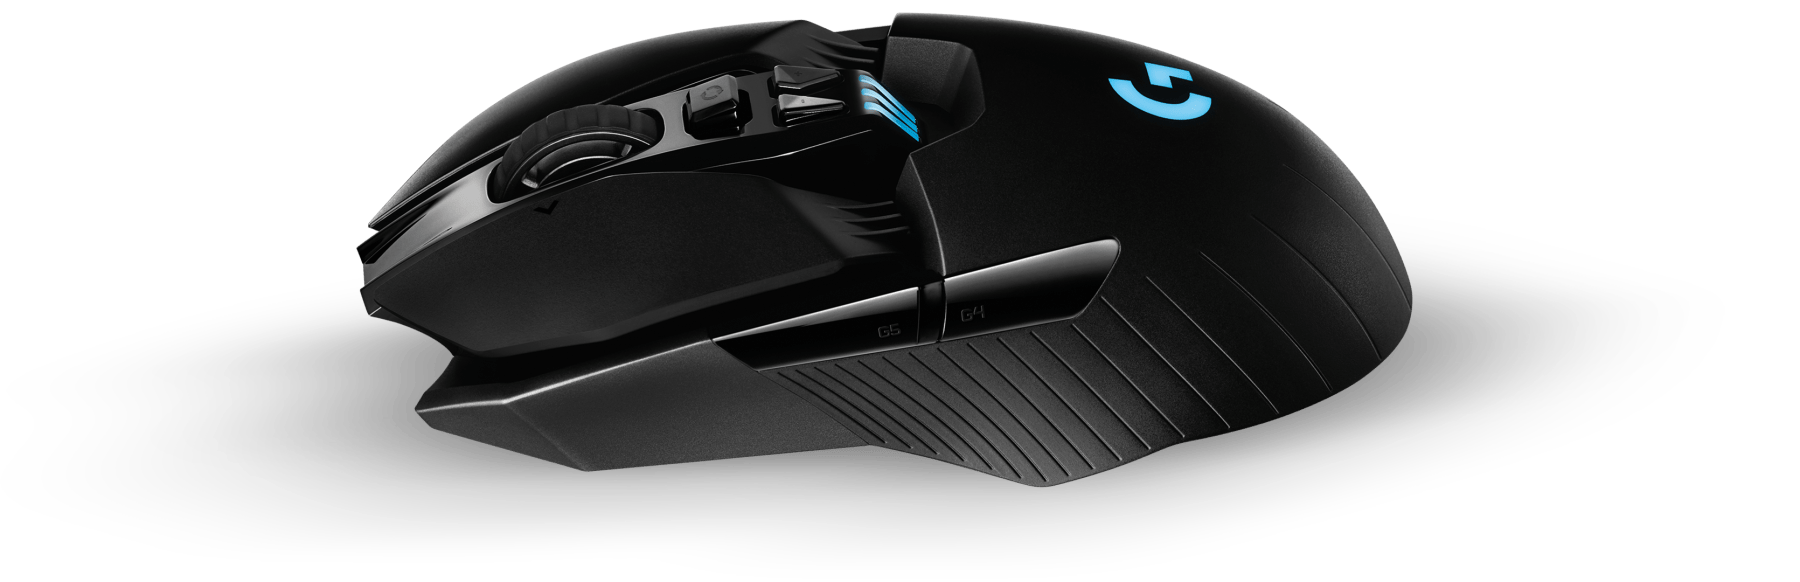 Souris gaming sans fil LIGHTSPEED G903